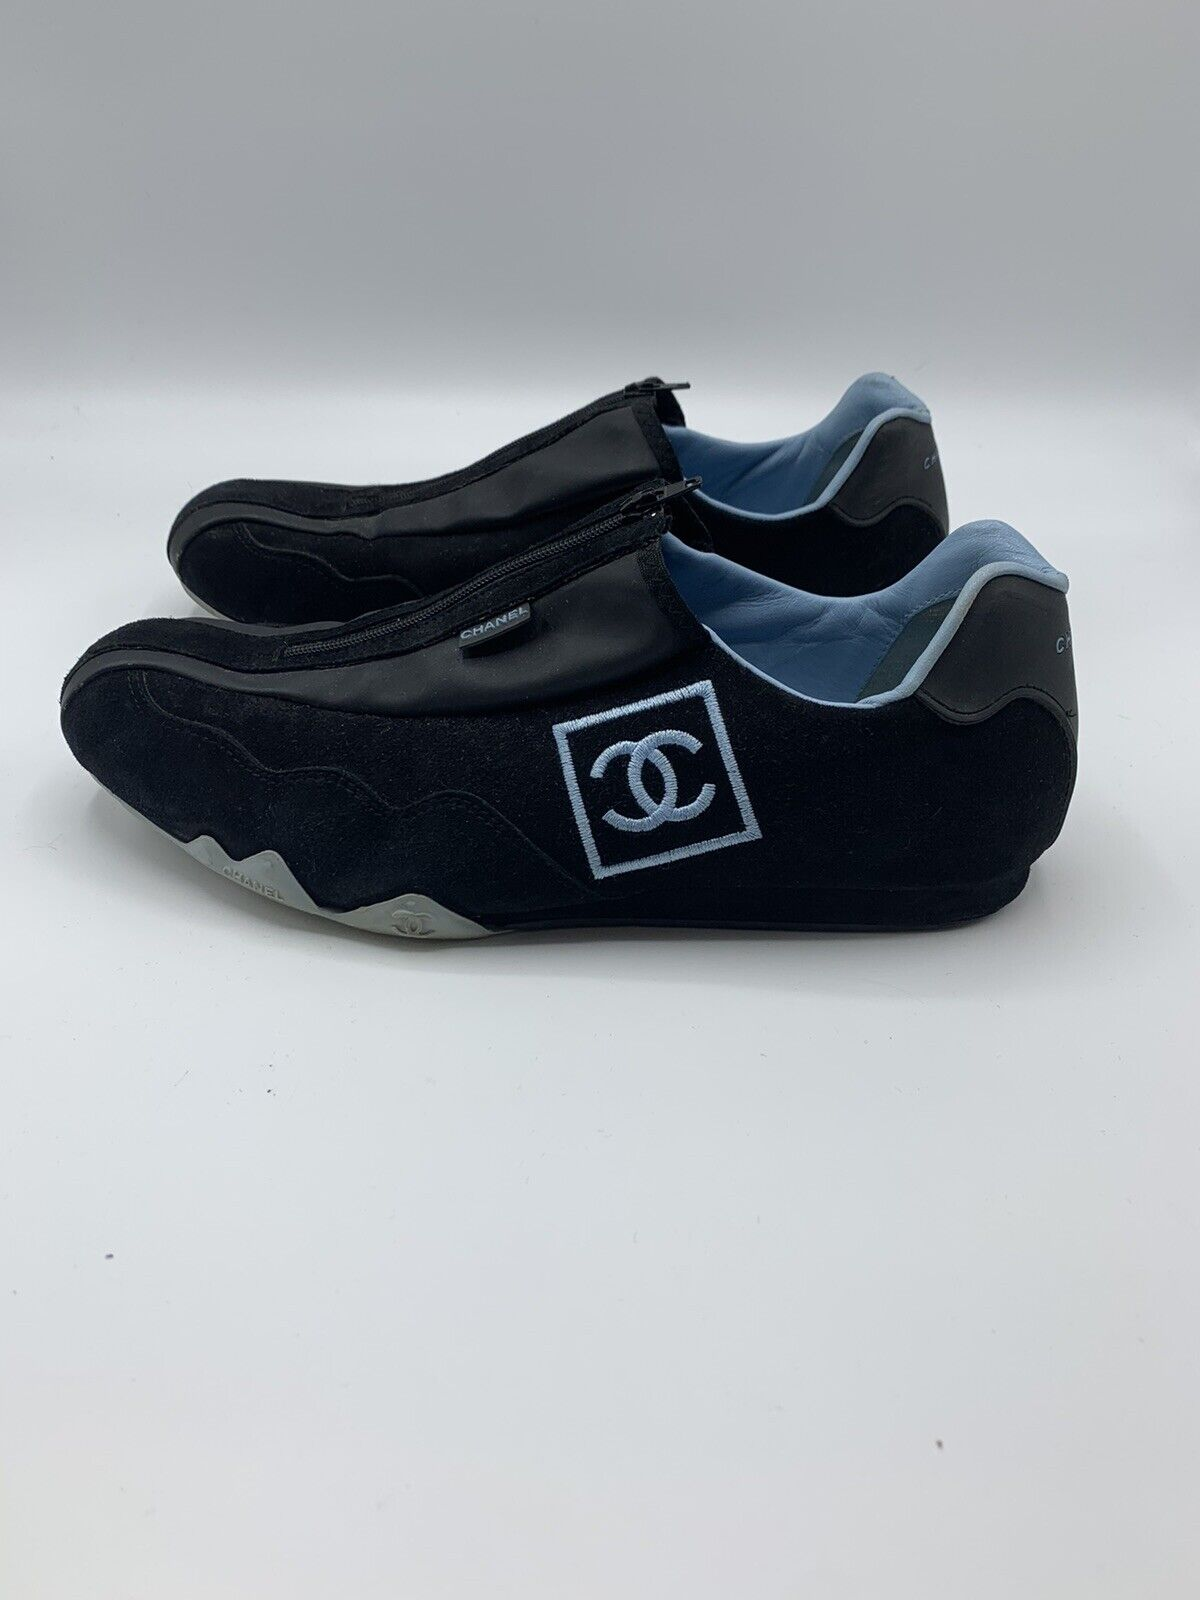 Chanel Sneakers - image 11